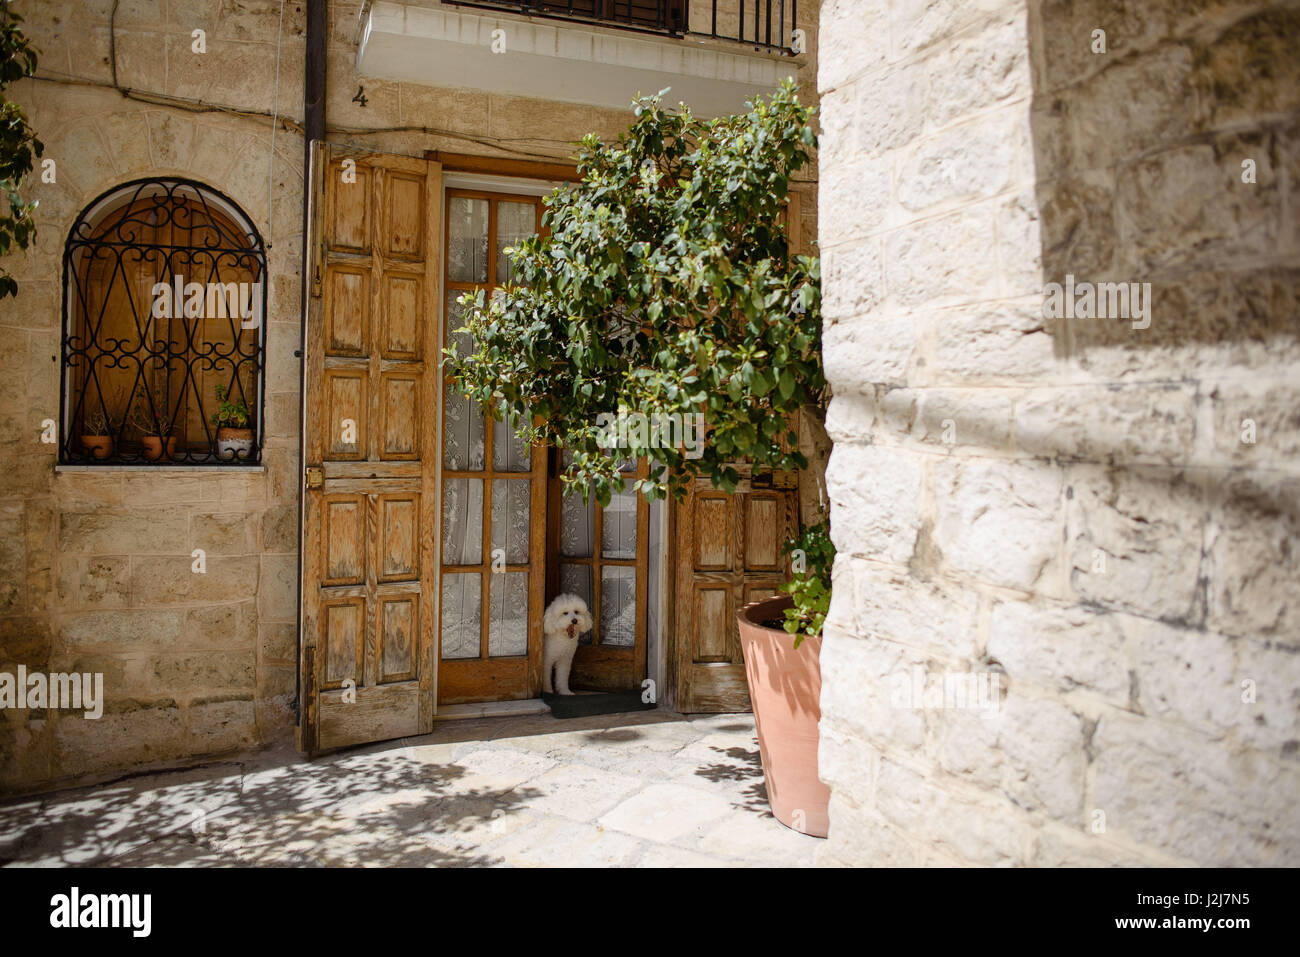 Watchdog of a flat in Bari, Italy - Stock Image